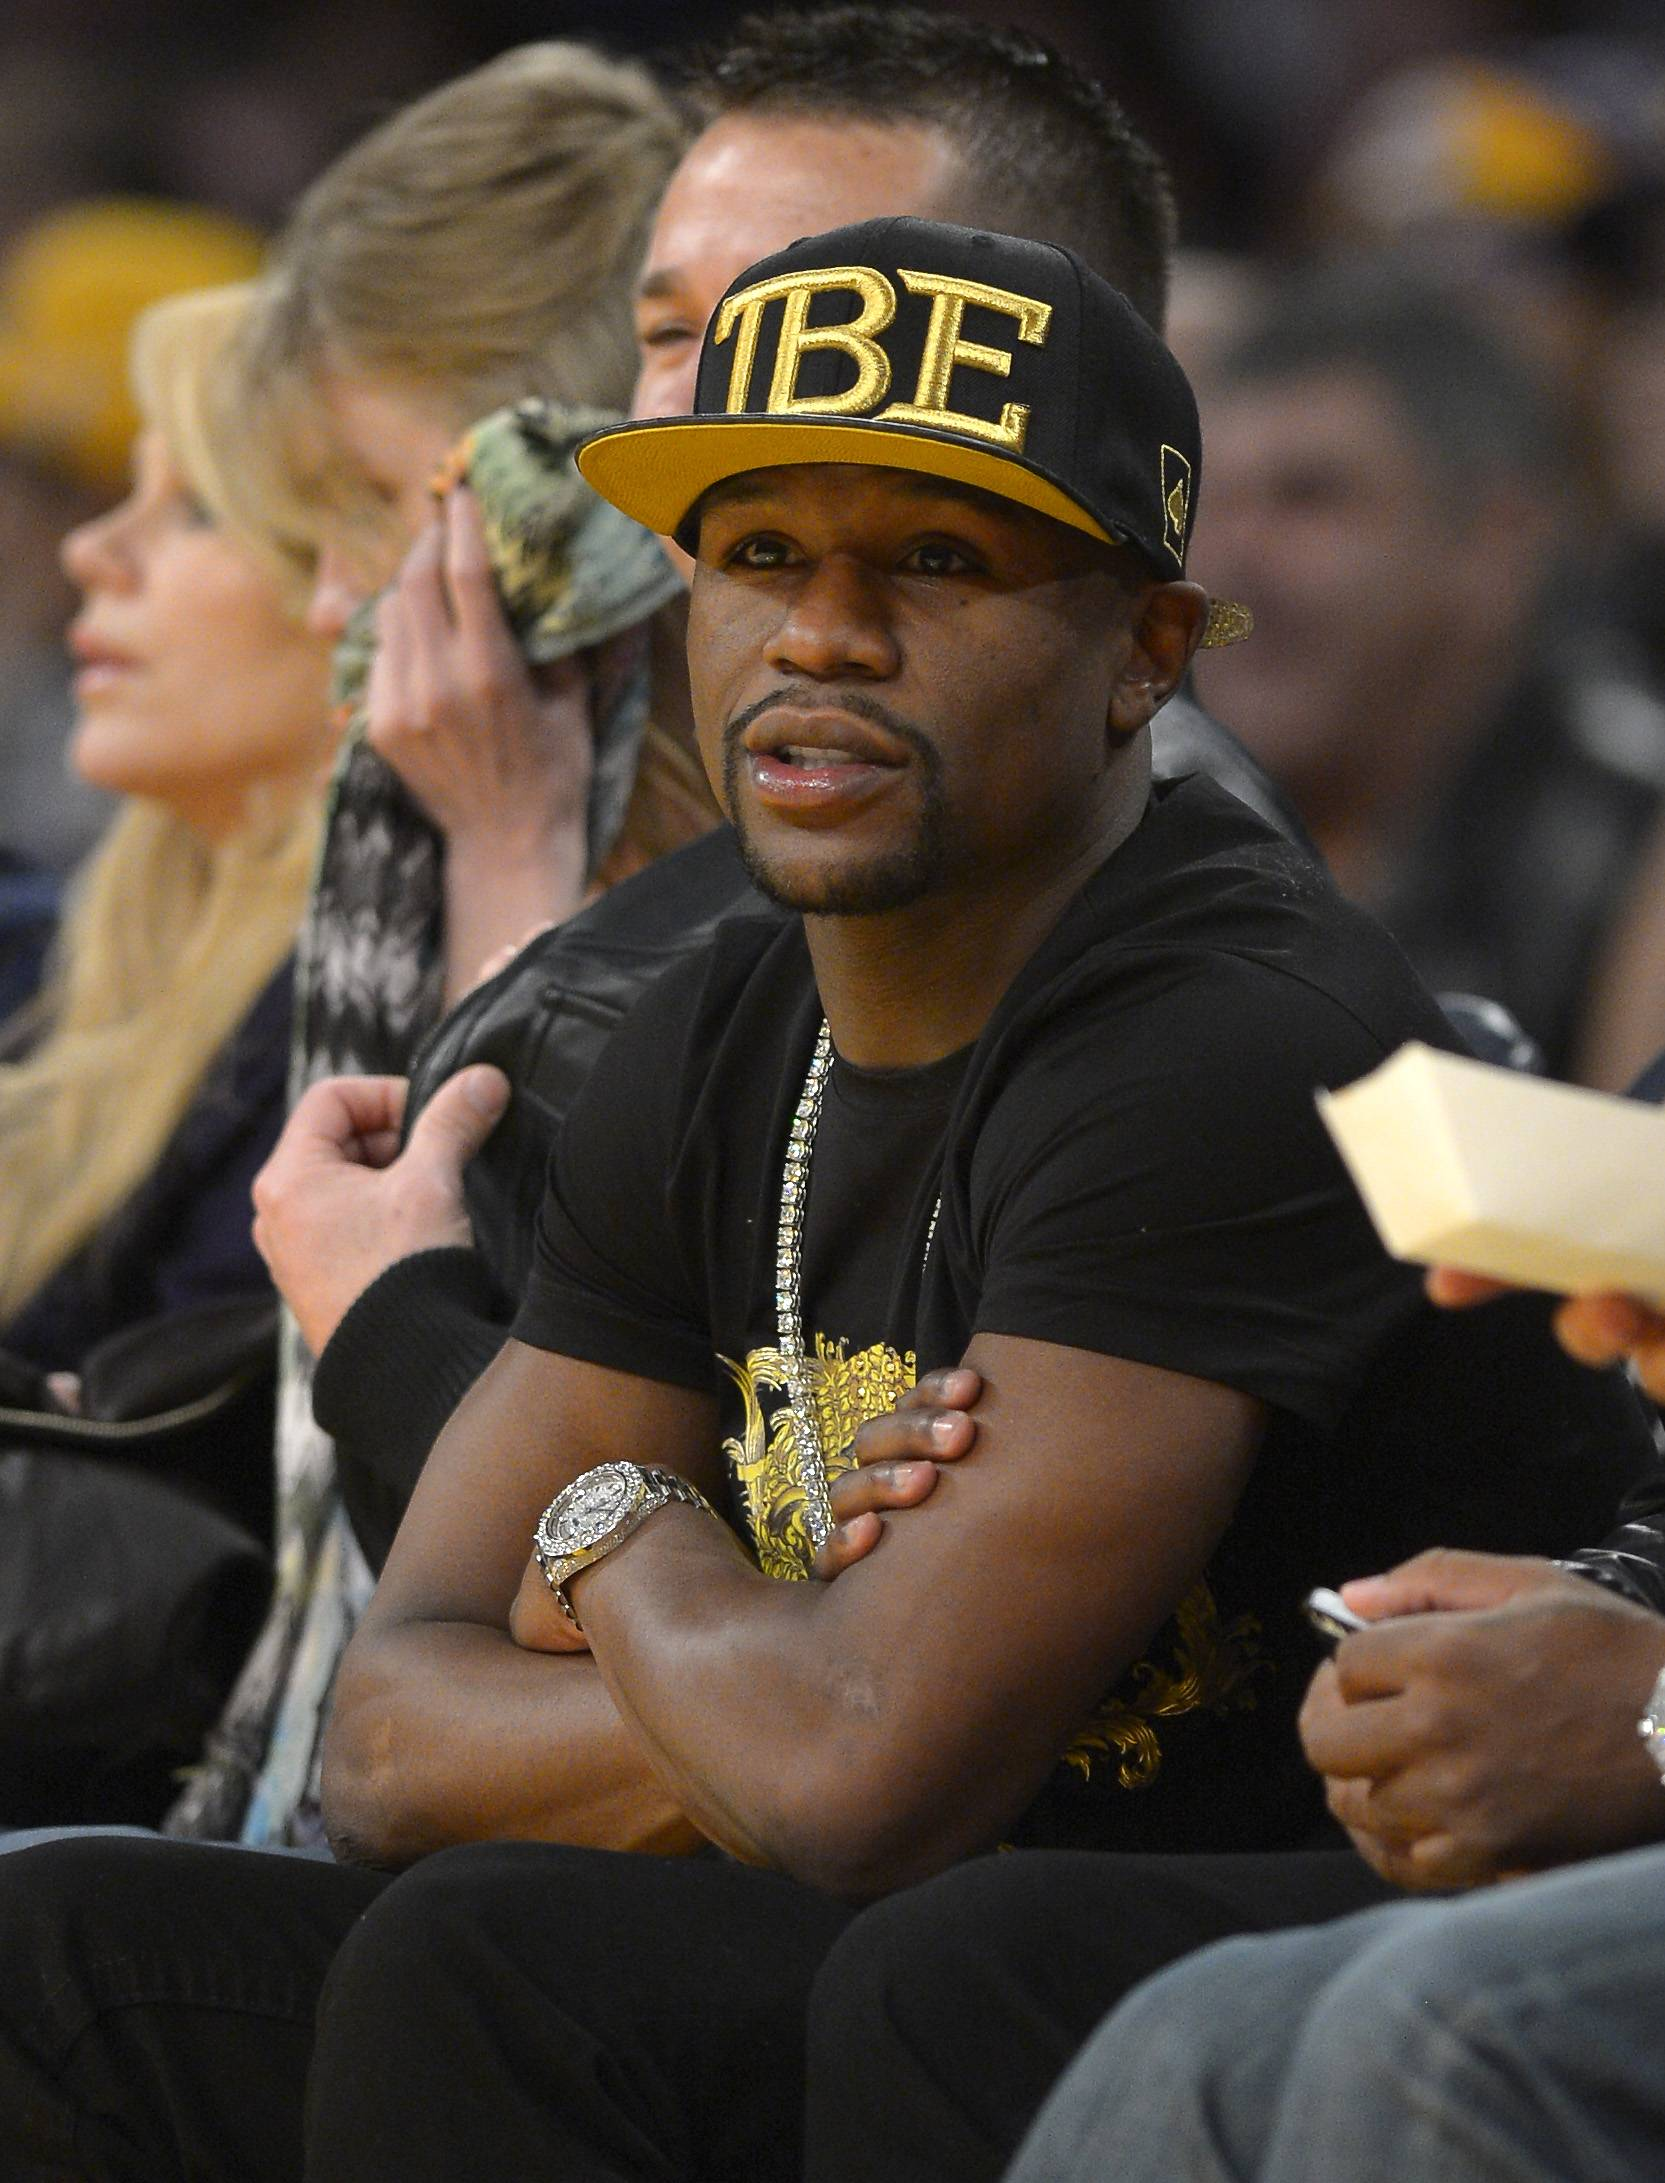 FILE - In this Nov. 24, 2013, file photo, Boxer Floyd Mayweather Jr. watches the Los Angeles Lakers play the Sacramento Kings during the first half of an NBA basketball game in Los Angeles. If Donald Sterling is compelled to sell the Los Angeles Clippers, the list of potential buyers will have more stars than the team's roster. Mayweather Jr. wants to form a group to buy the team.